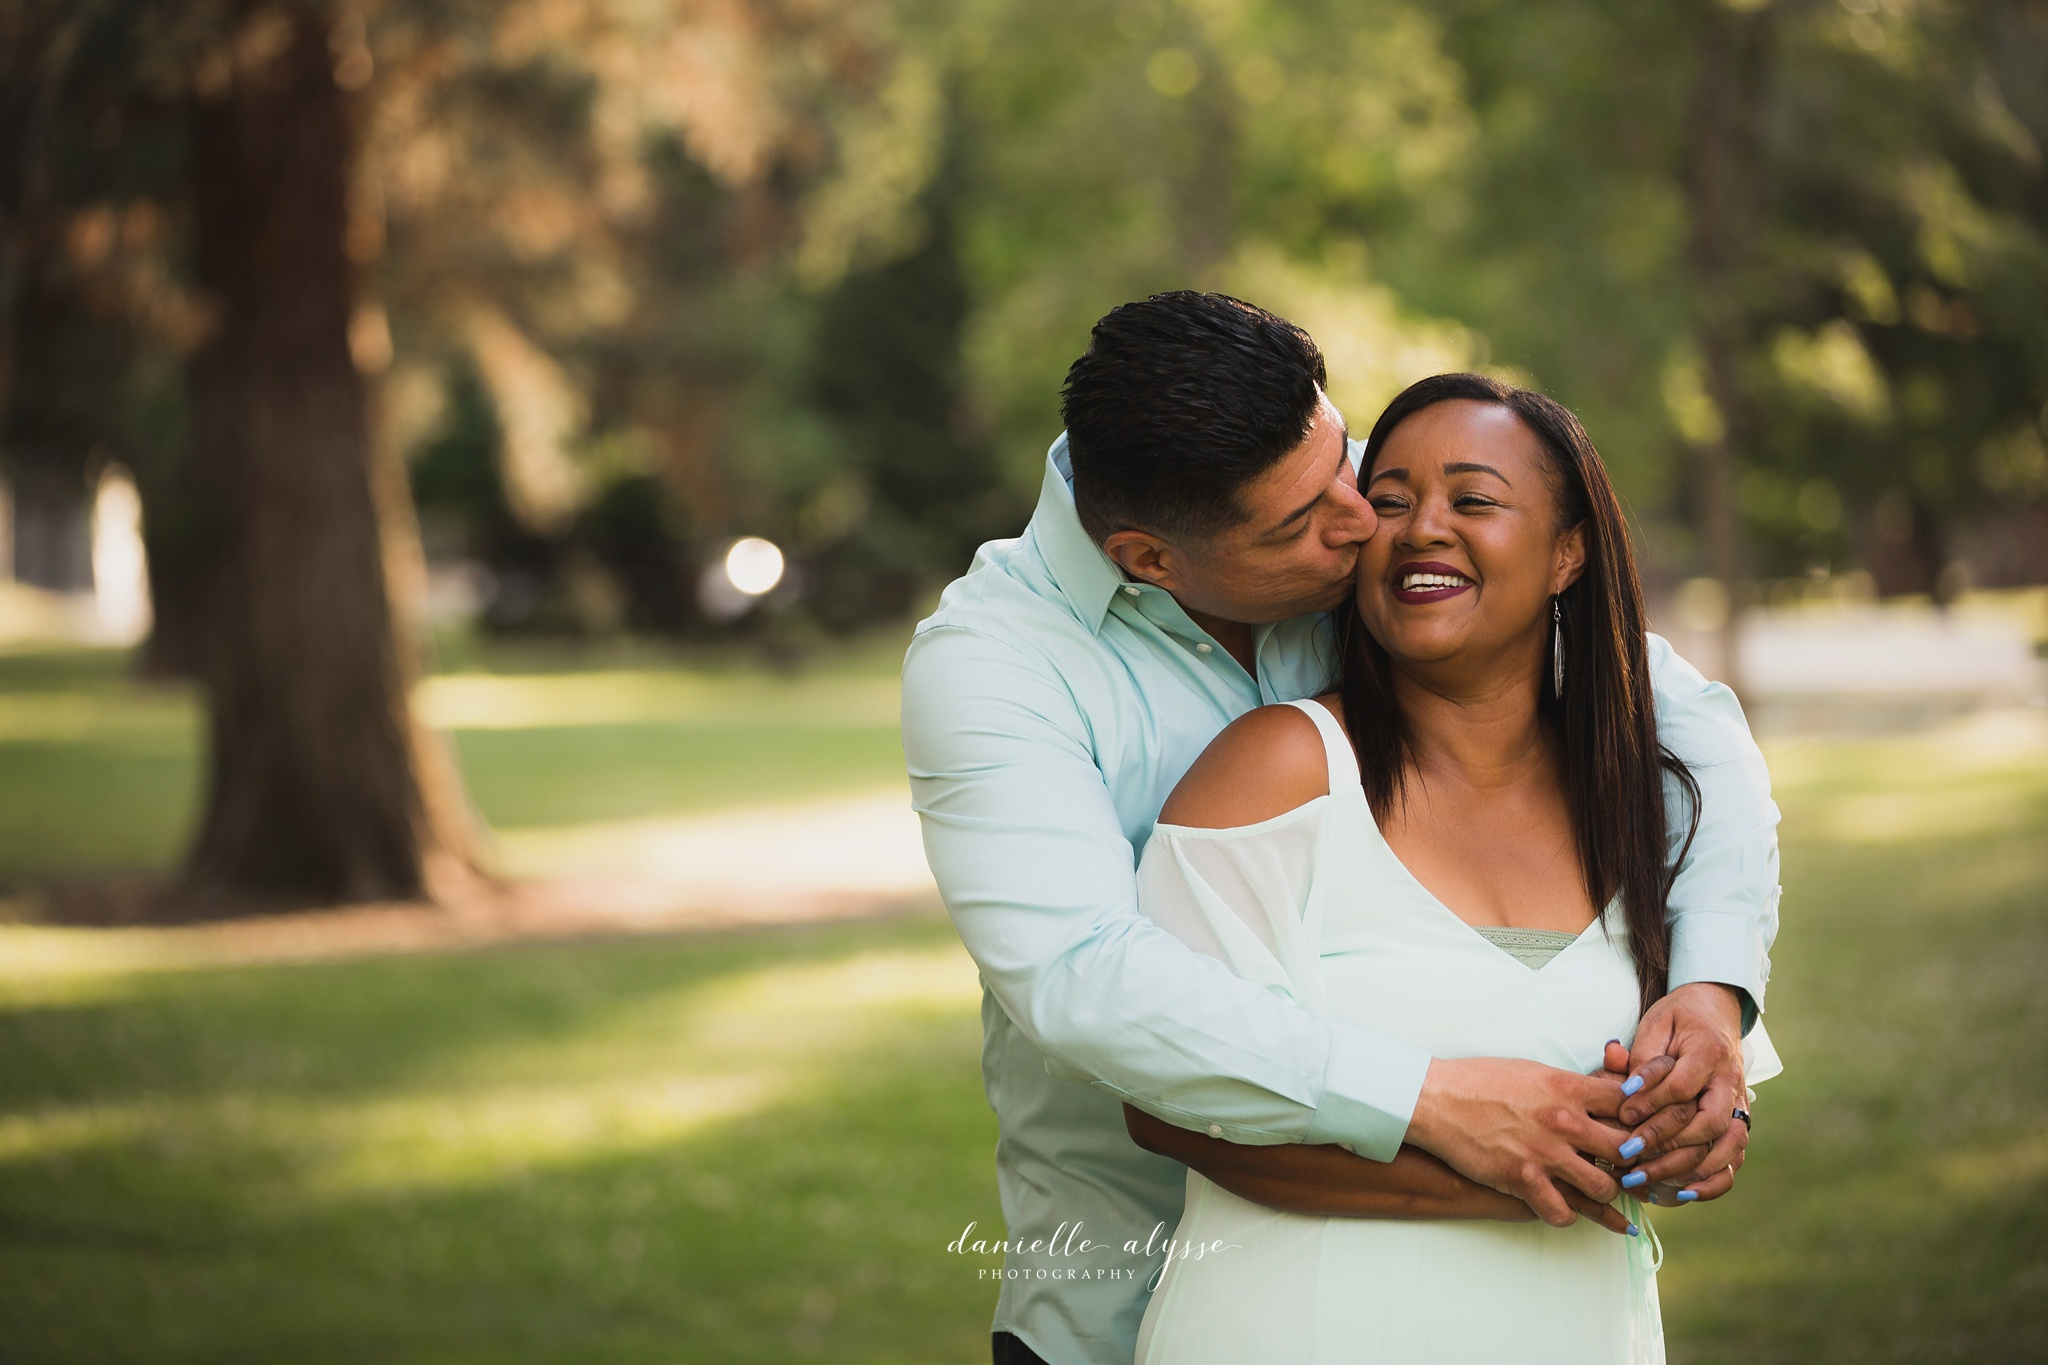 180604_family_senior_portrait_eresvey_sacramento_state_capitol_california_danielle_alysse_photography_blog_2_15_WEB.jpg